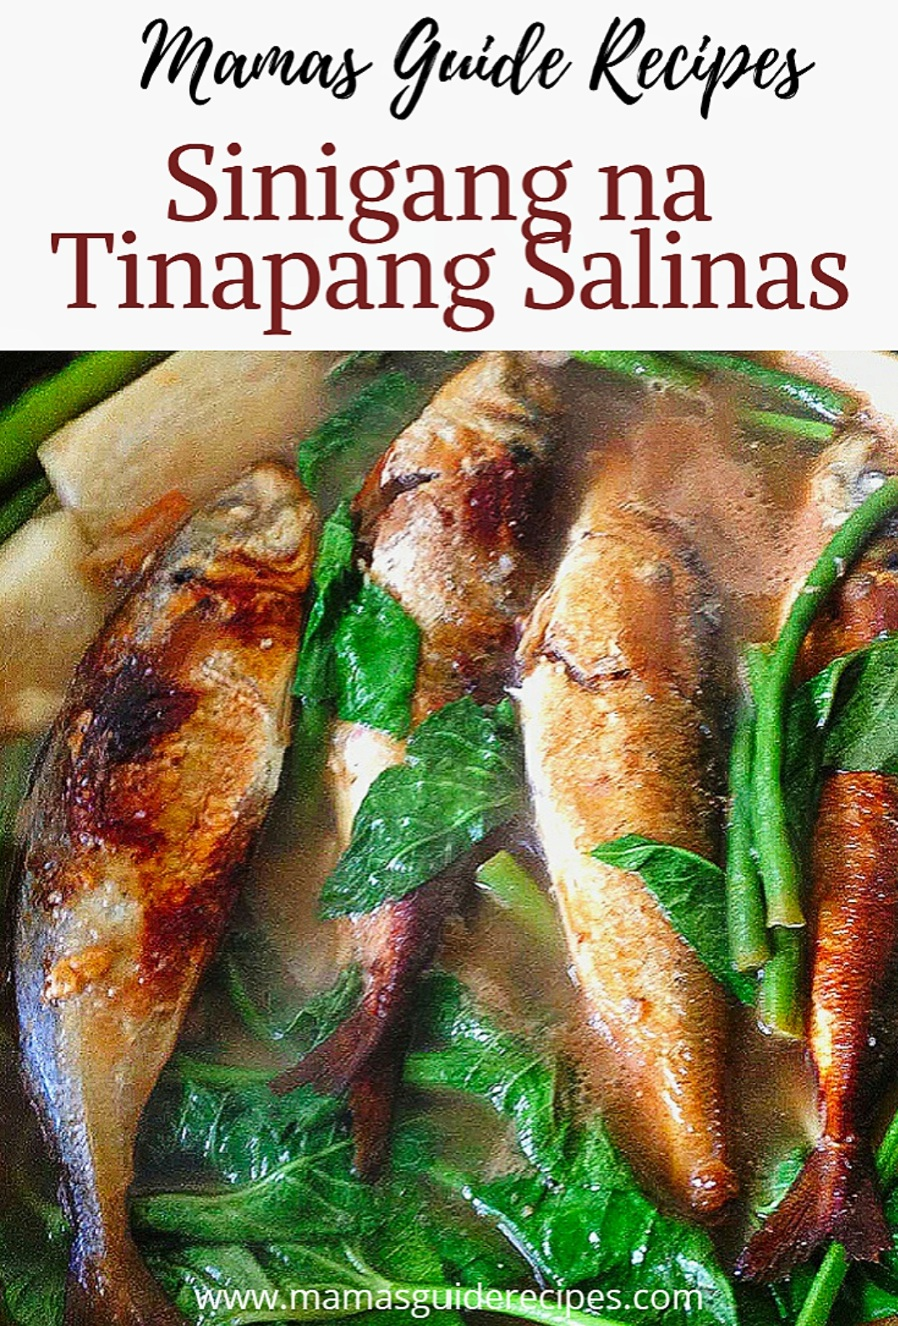 Mamas guide recipes make life more delicious with mamas guide sinigang na tinapang salinas forumfinder Gallery